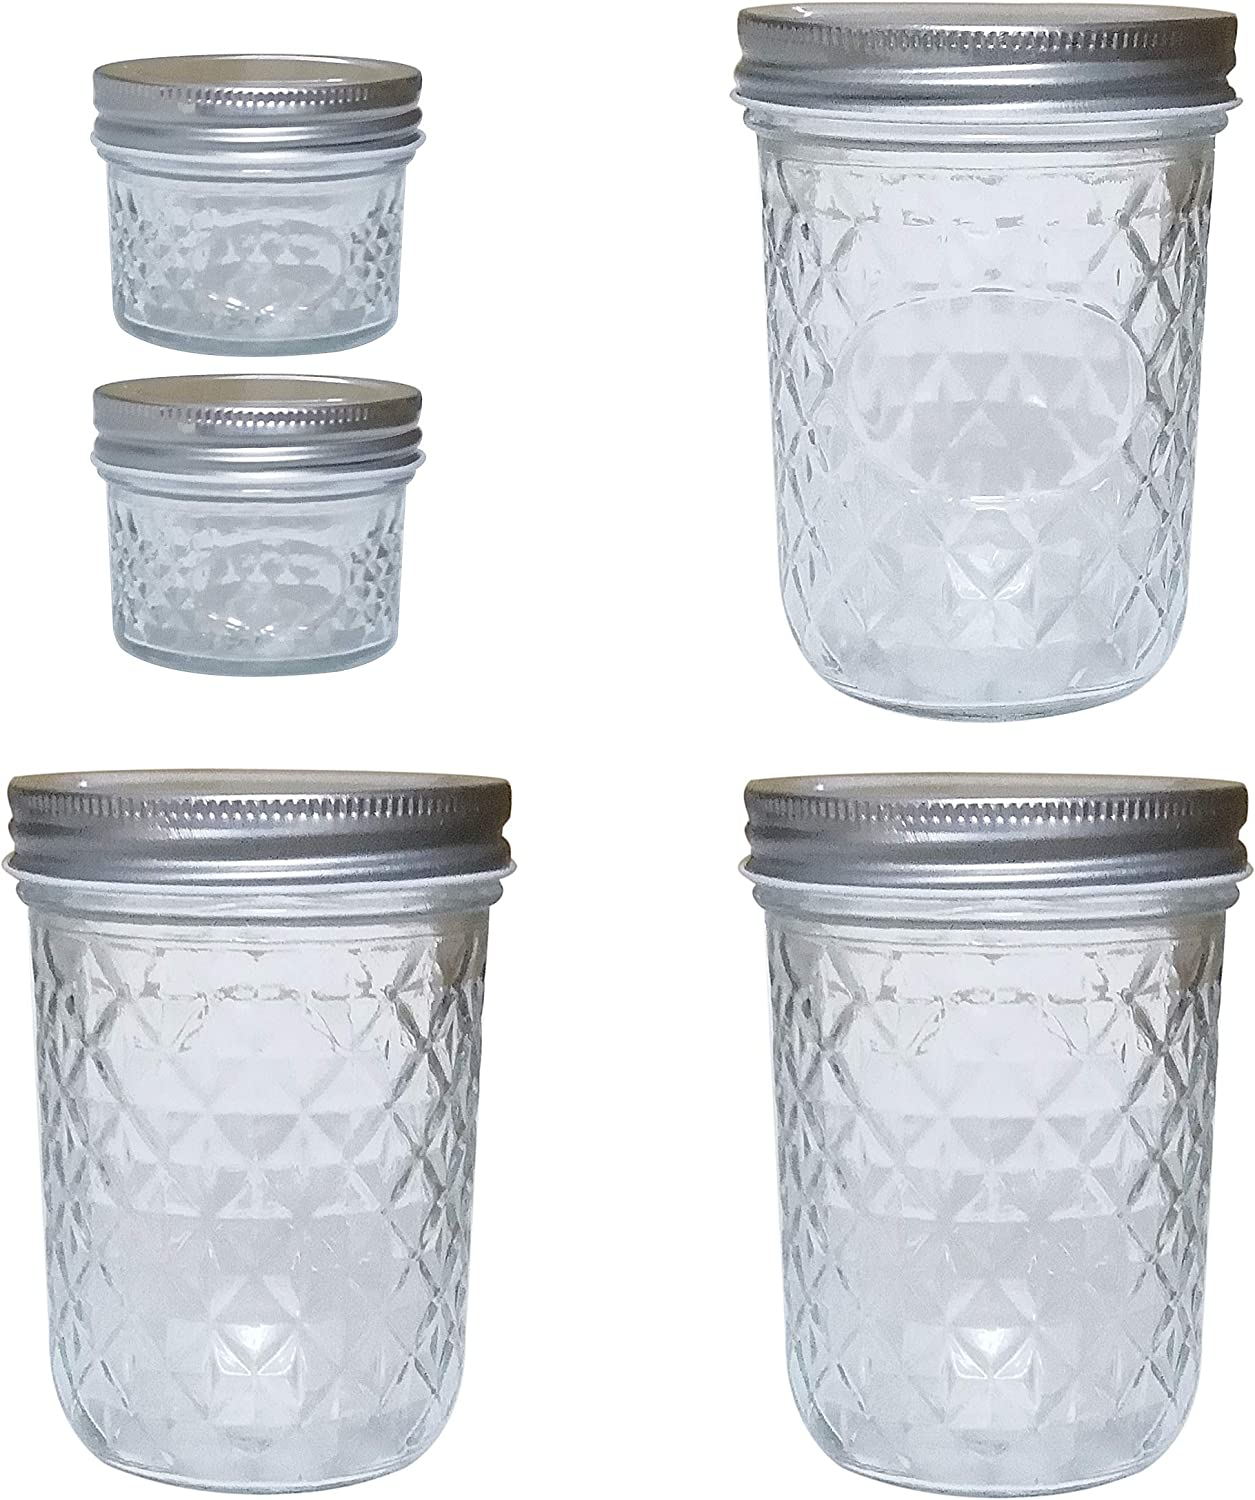 Glass Wide Mouth Mason Jars 16oz Quilted Crystal Style With Metal Airtight Lid,Set of 3,Ideal for Jam,Honey,Wedding Favors,Canning Jars,Baby Foods,Decorating Jar.